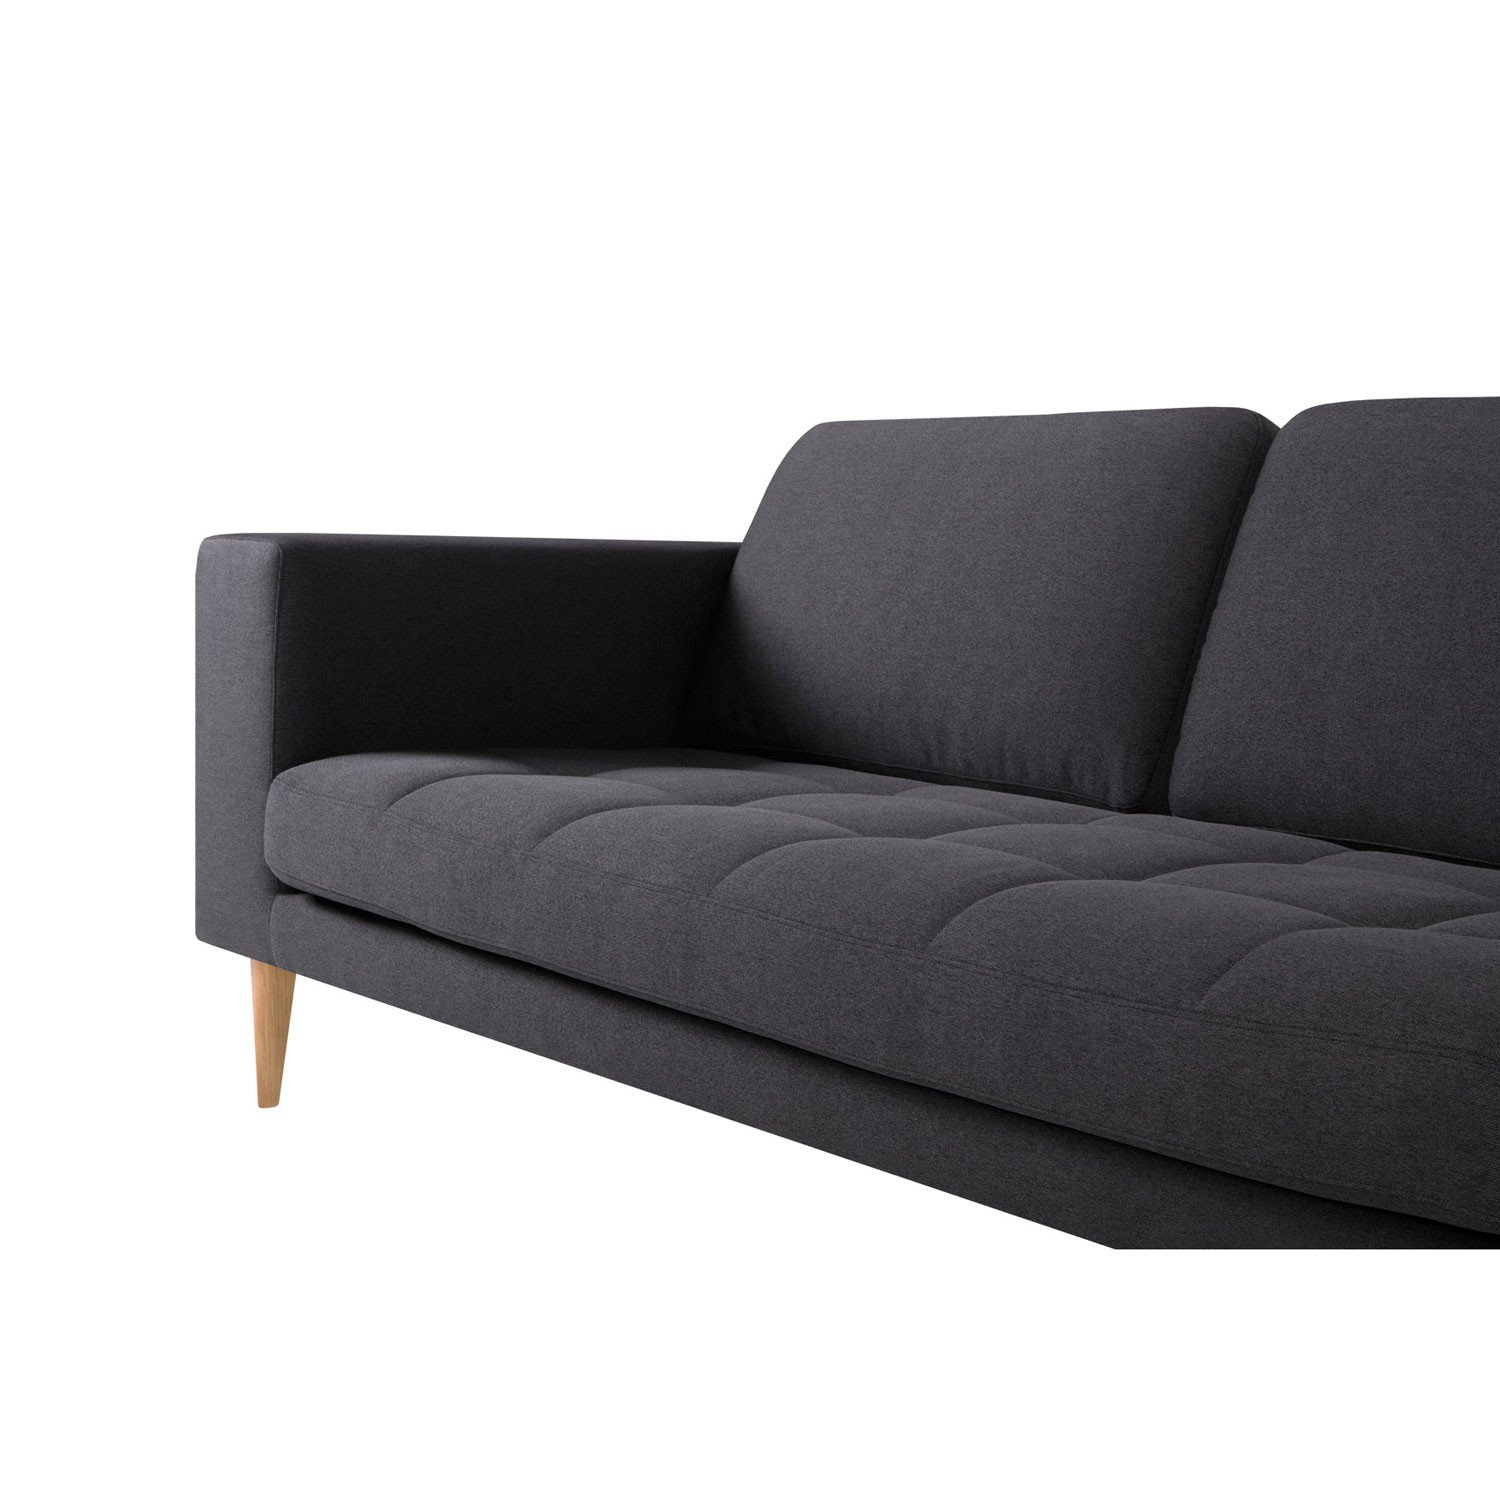 Milano 3 Seater Sofa | Aif London Intended For London Dark Grey Sofa Chairs (View 9 of 25)